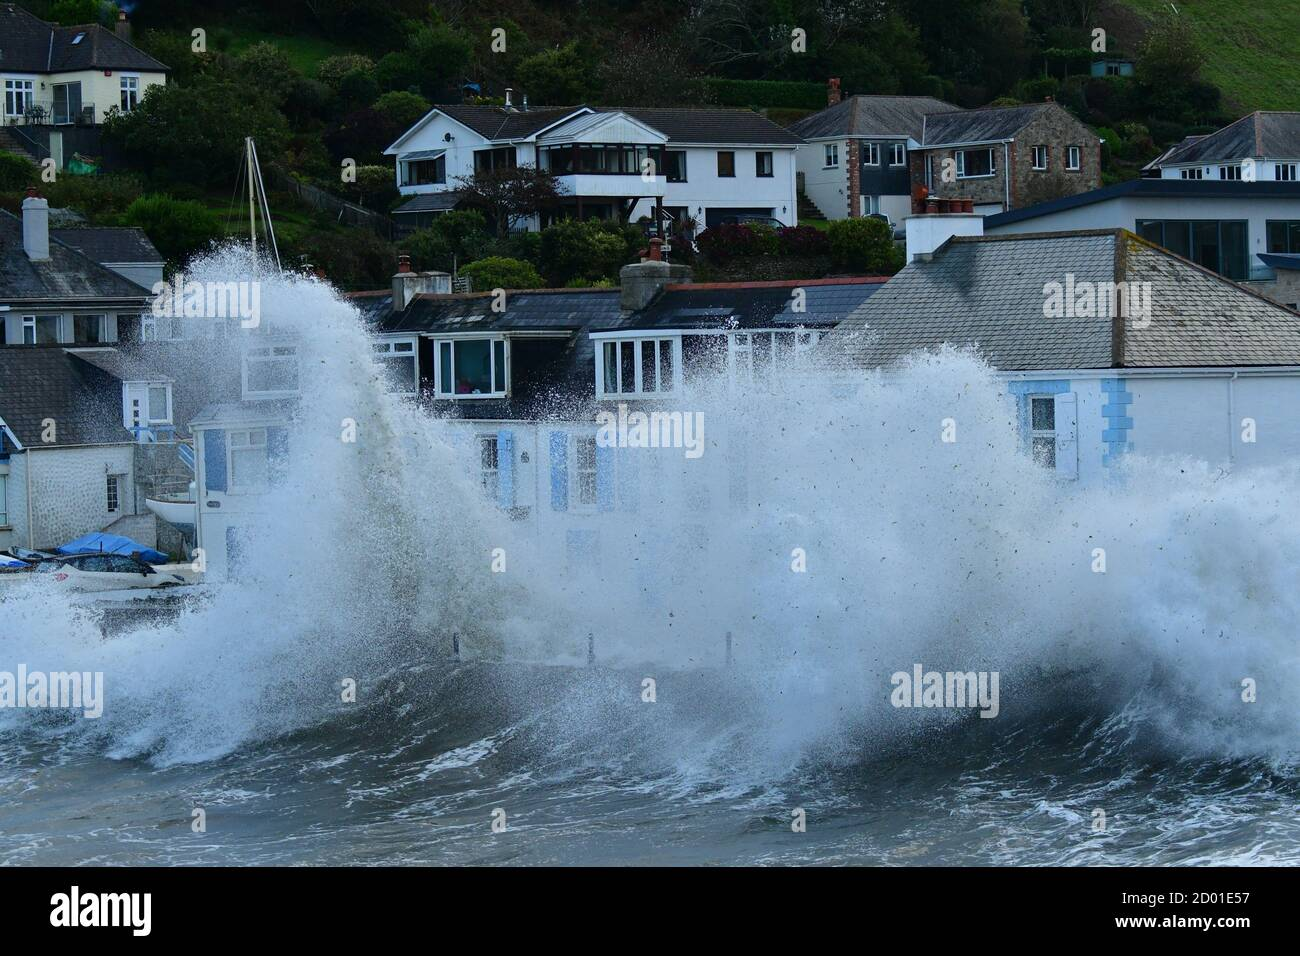 Portmellon, Cornwall. 2nd October 2020. UK Weather. Huge Storm force Waves batter houses on the front at Portmellon in Cornwall friday afternoon. Picture Credit Robert Timoney/Alamy/Live/News Stock Photo